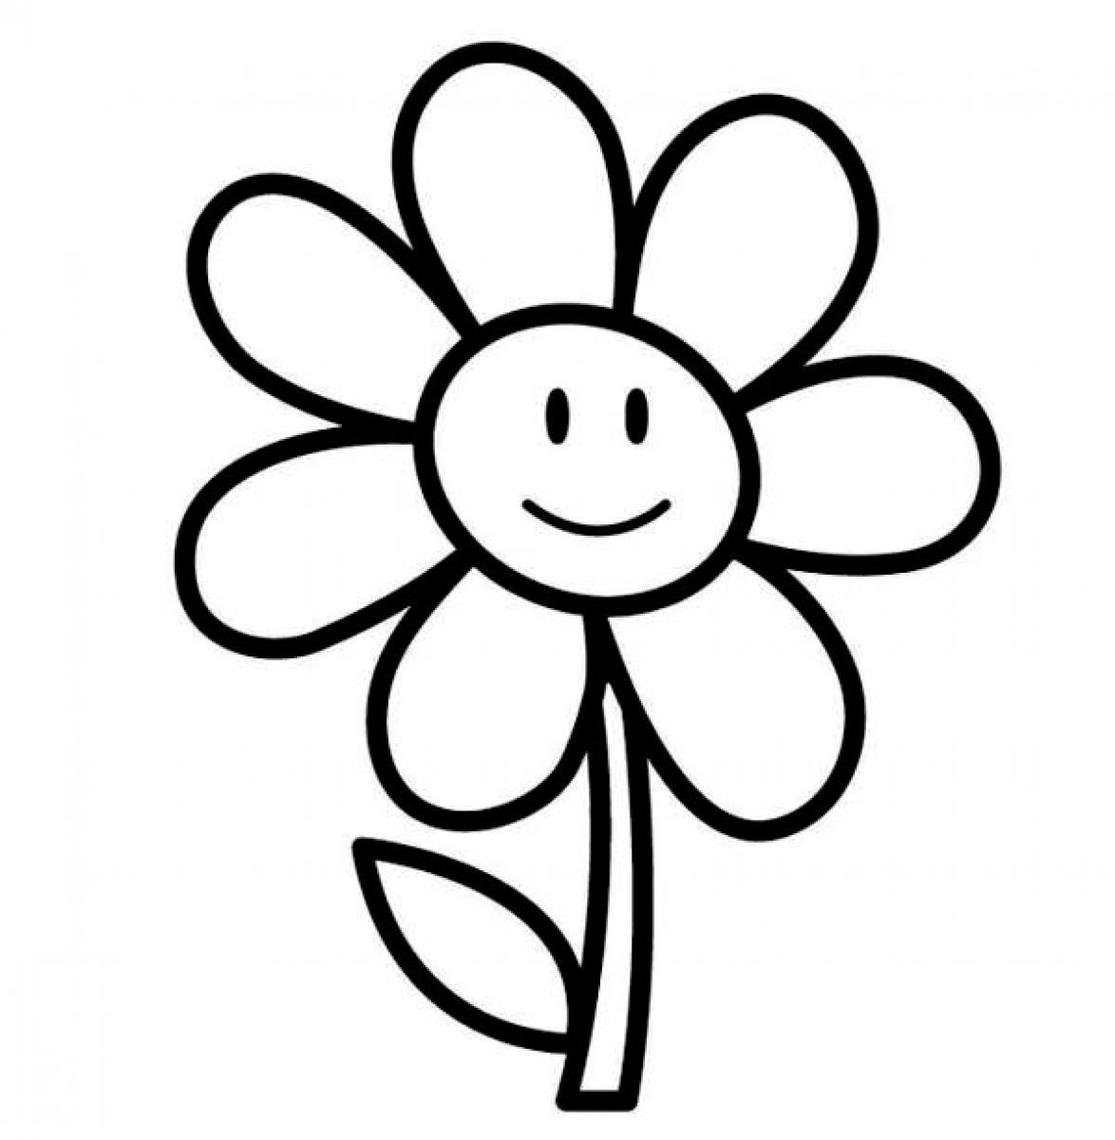 Flower clipart simple black and white. Free download best